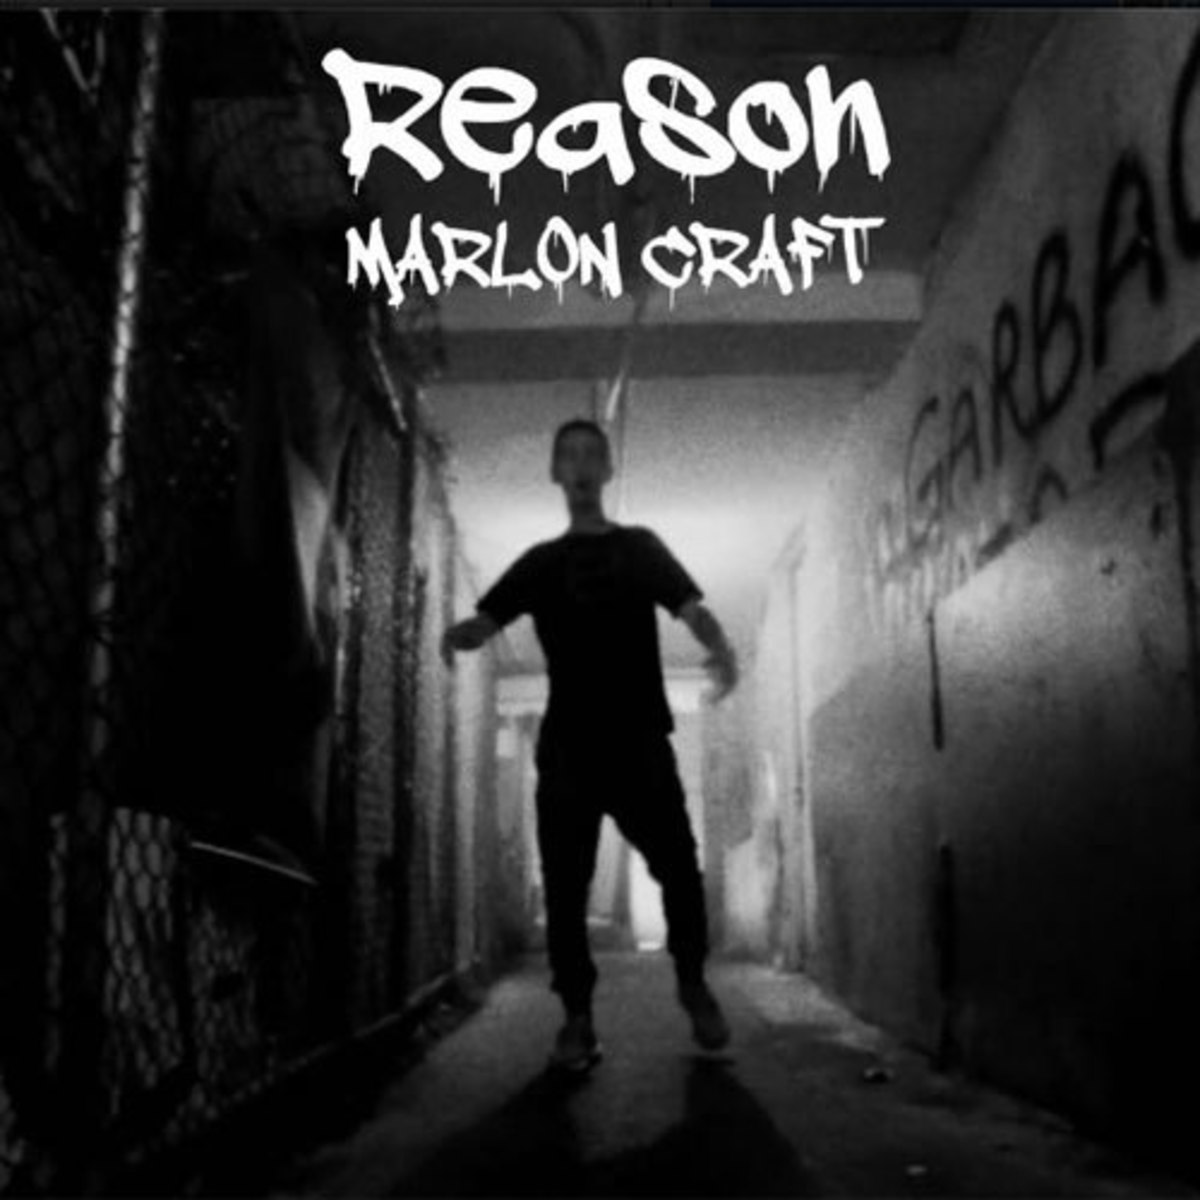 marlon-craft-reason.jpg